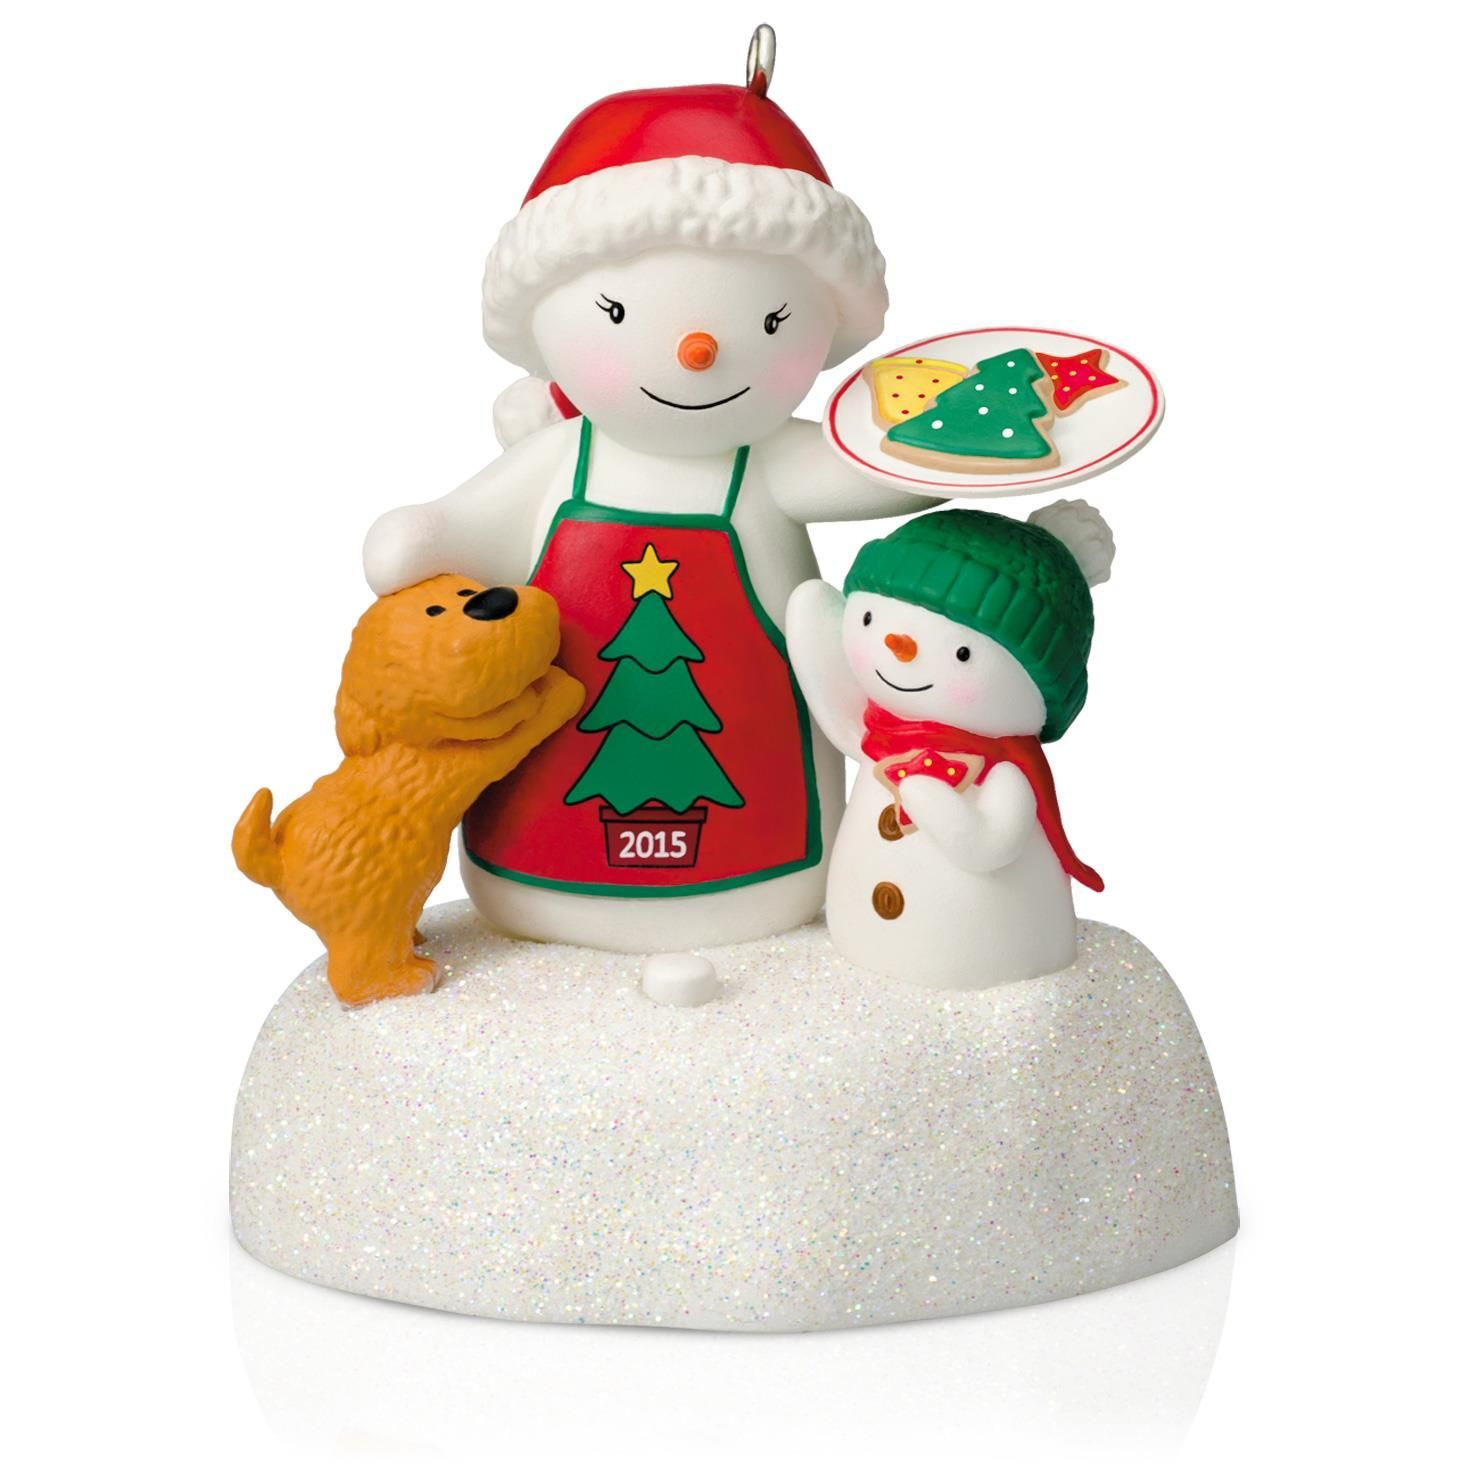 Baking Treats Together Deck The Halls Ornament